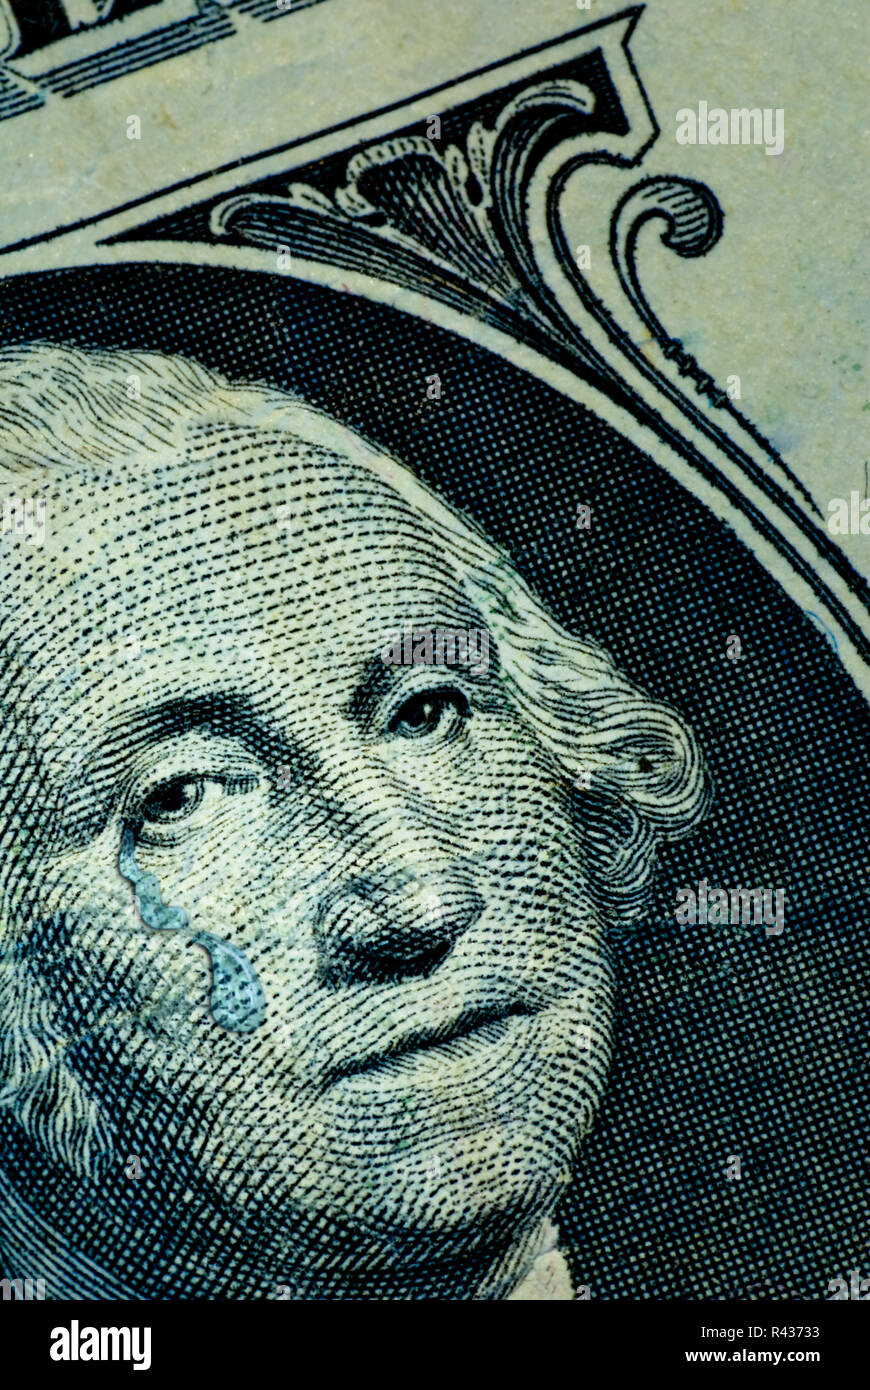 George Washington weeps for the sad state of the American economy. - Stock Image